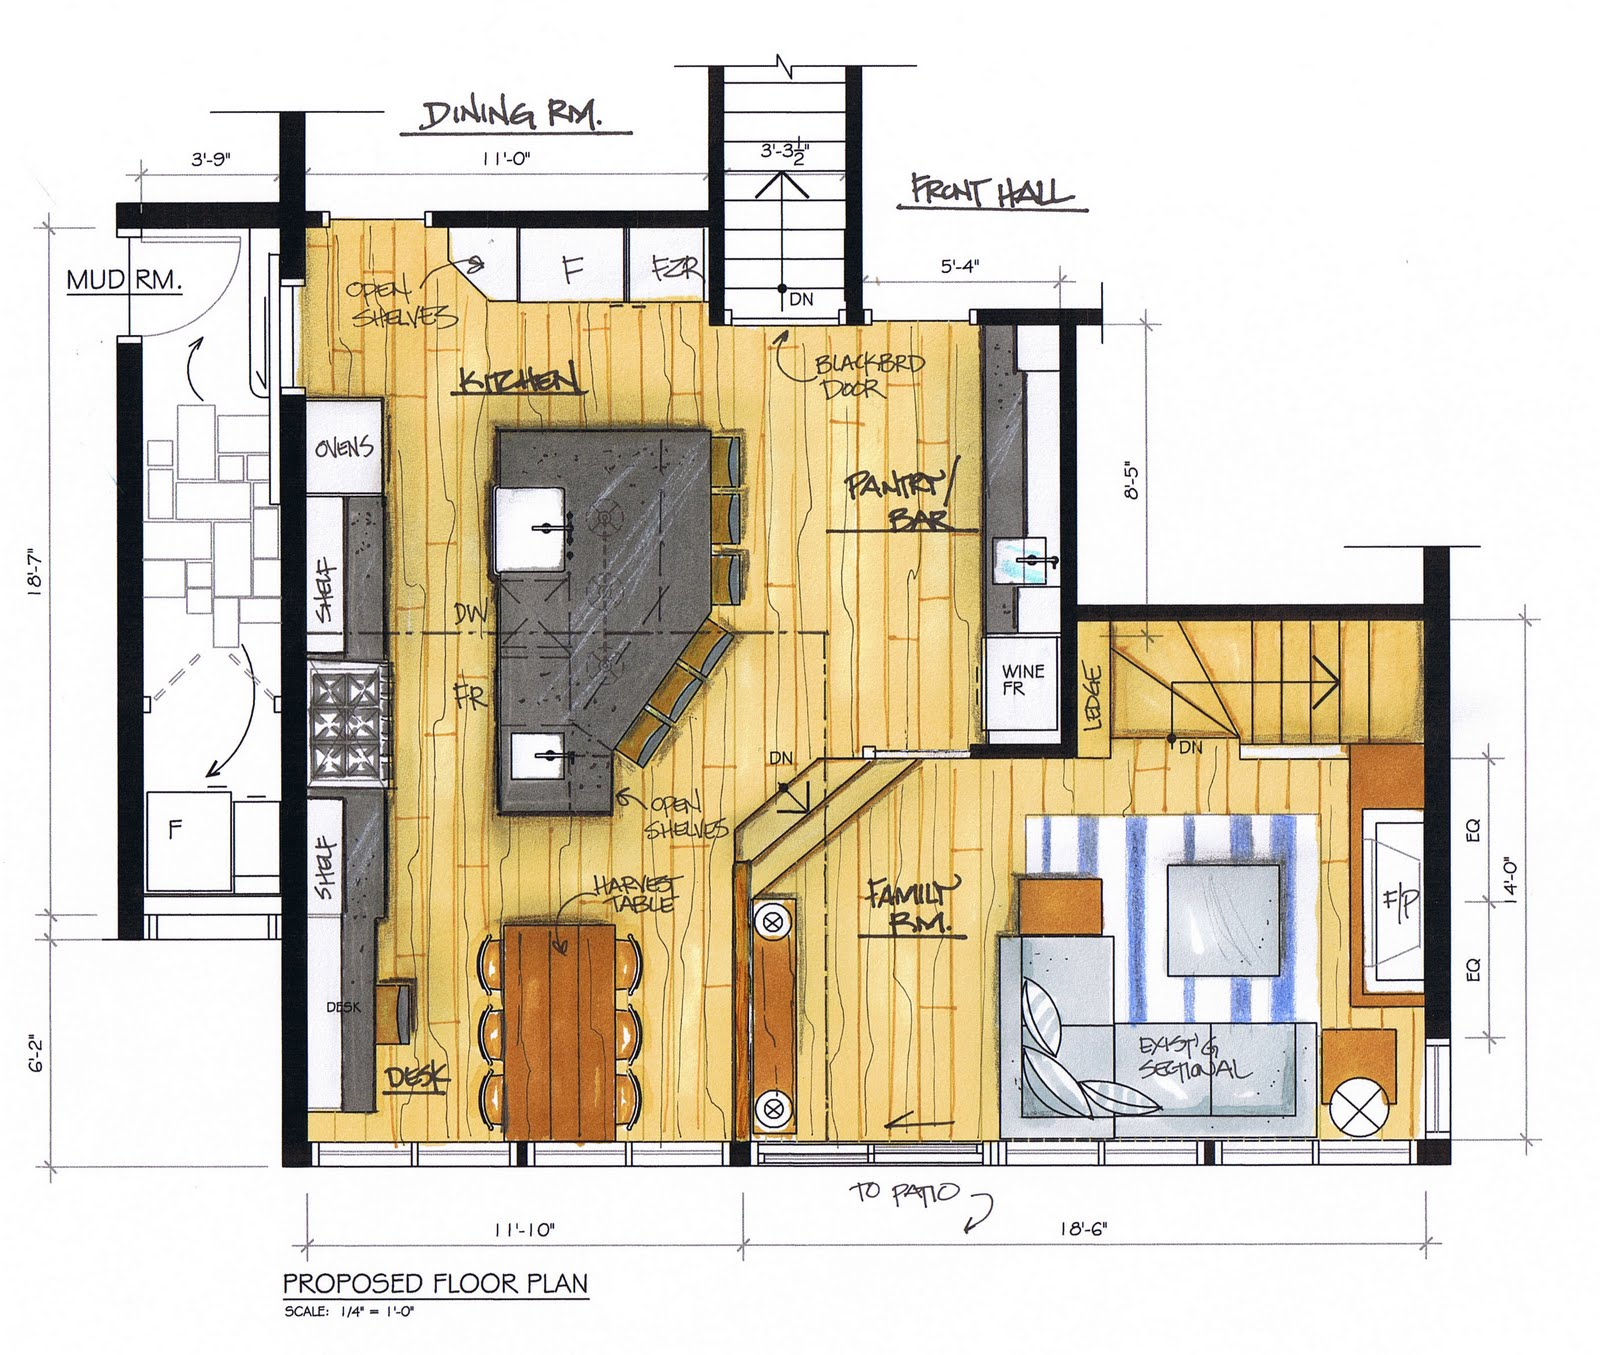 1 Bedroom Apartment Building Plans